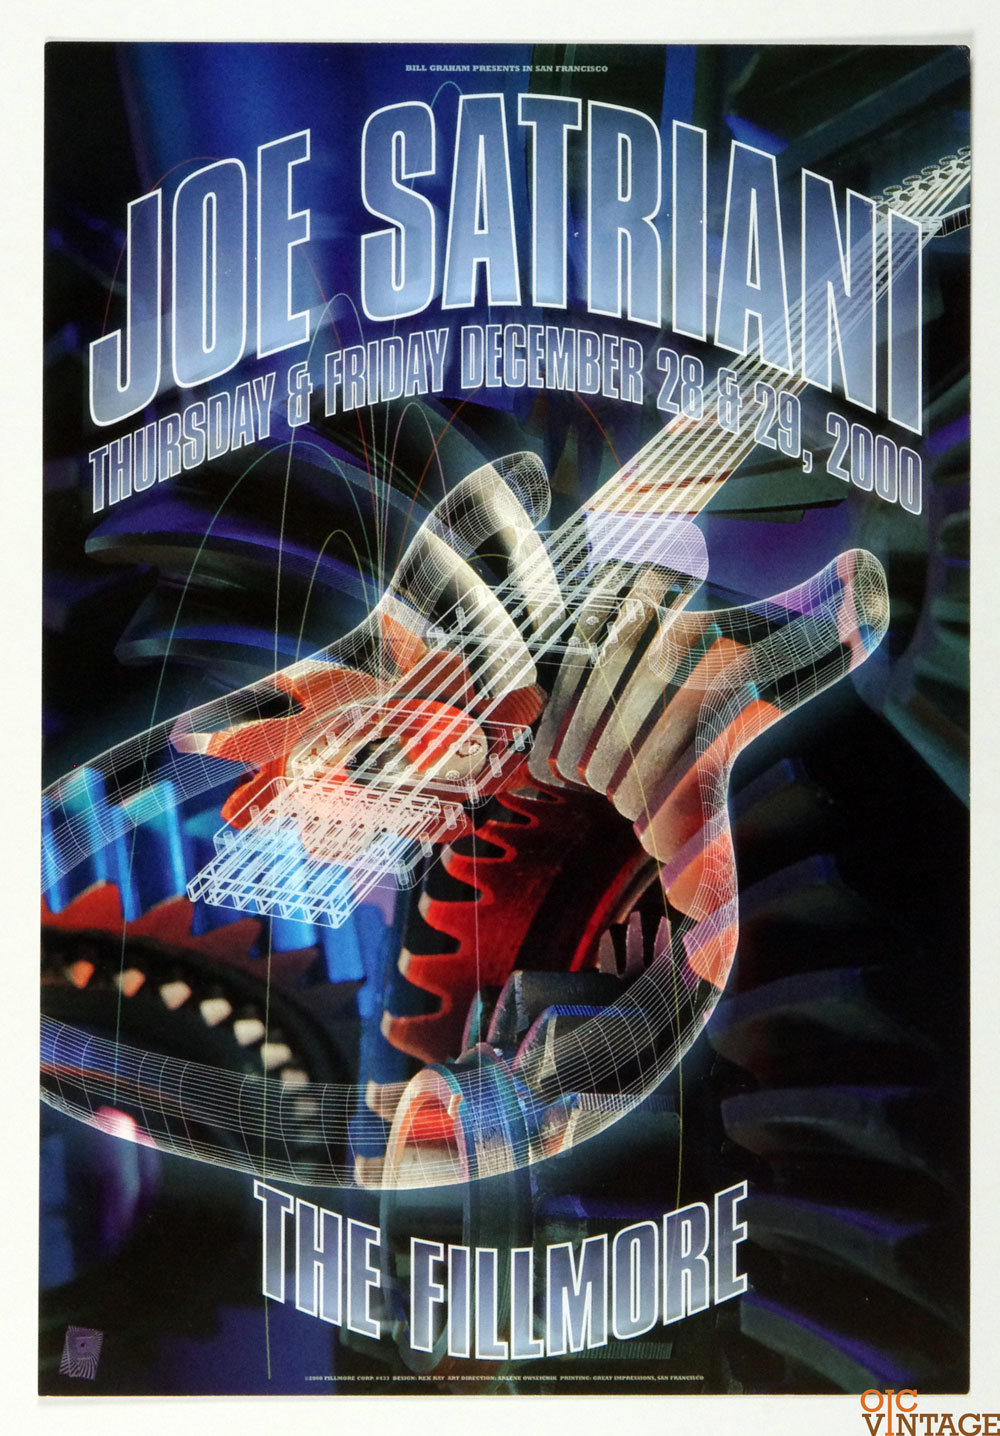 Joe Satriani Poster 2000 Dec 28 New Fillmore